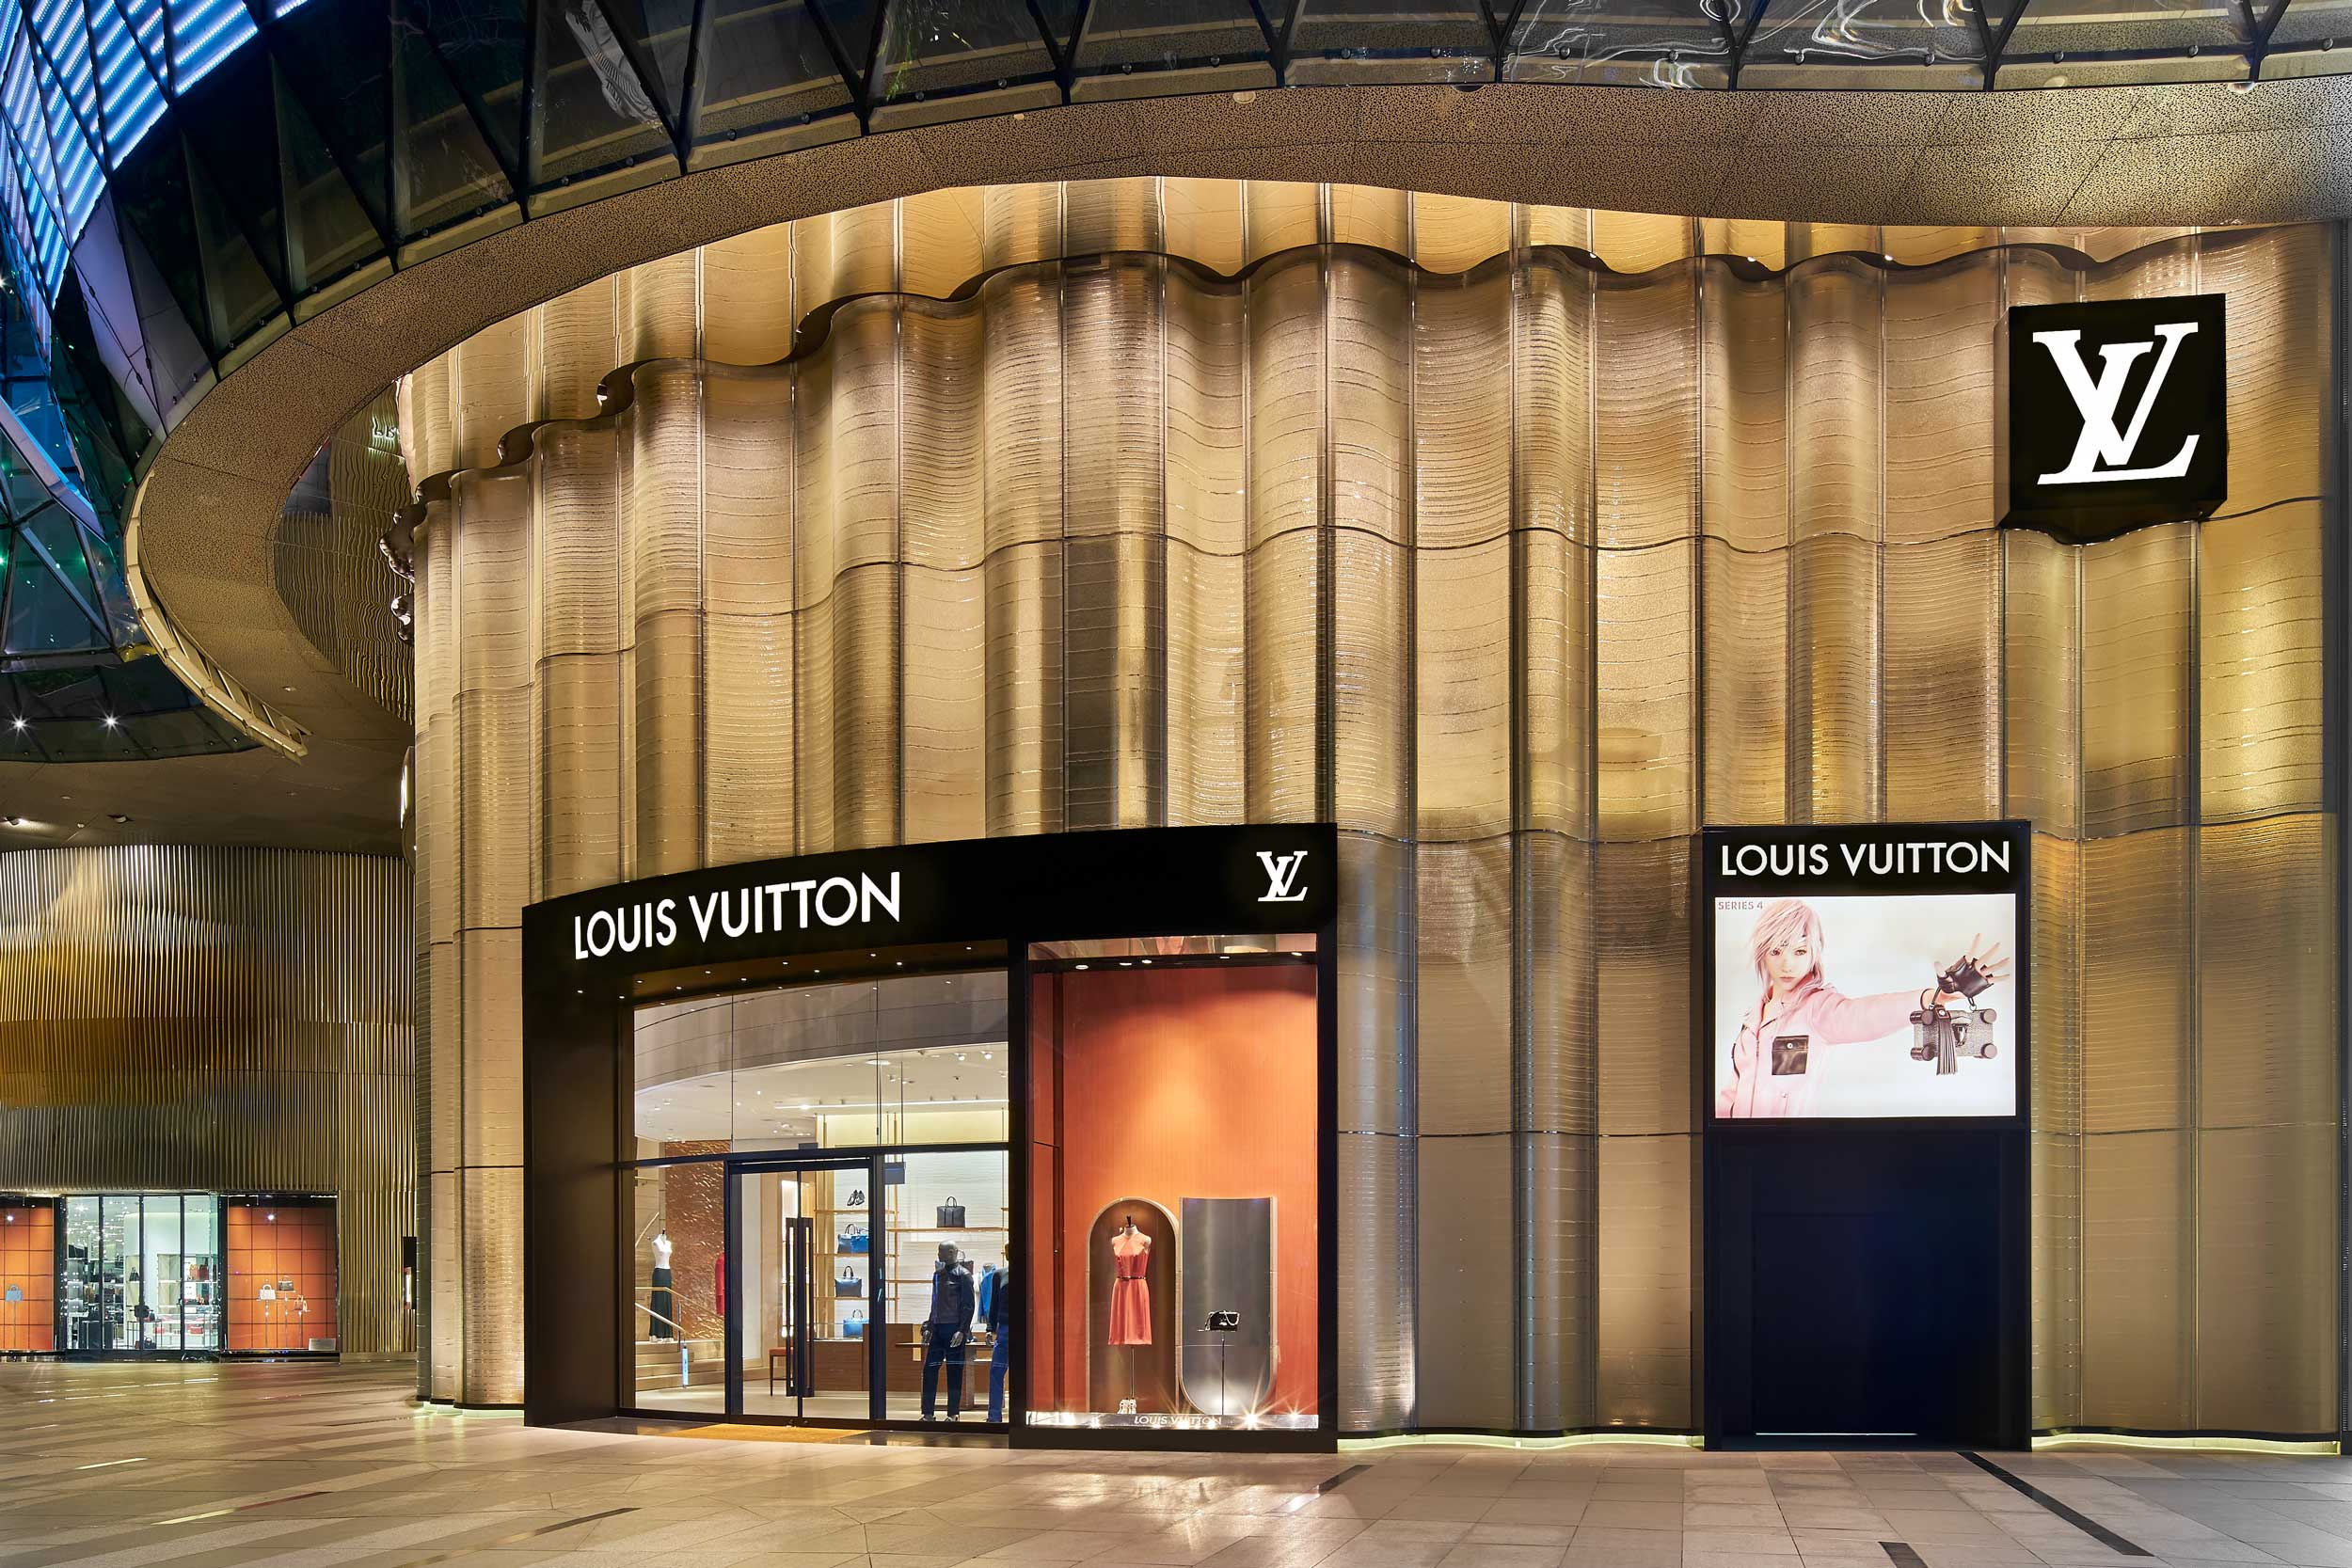 Louis-Vuitton-store-ION-Orchard-Singapore-facade